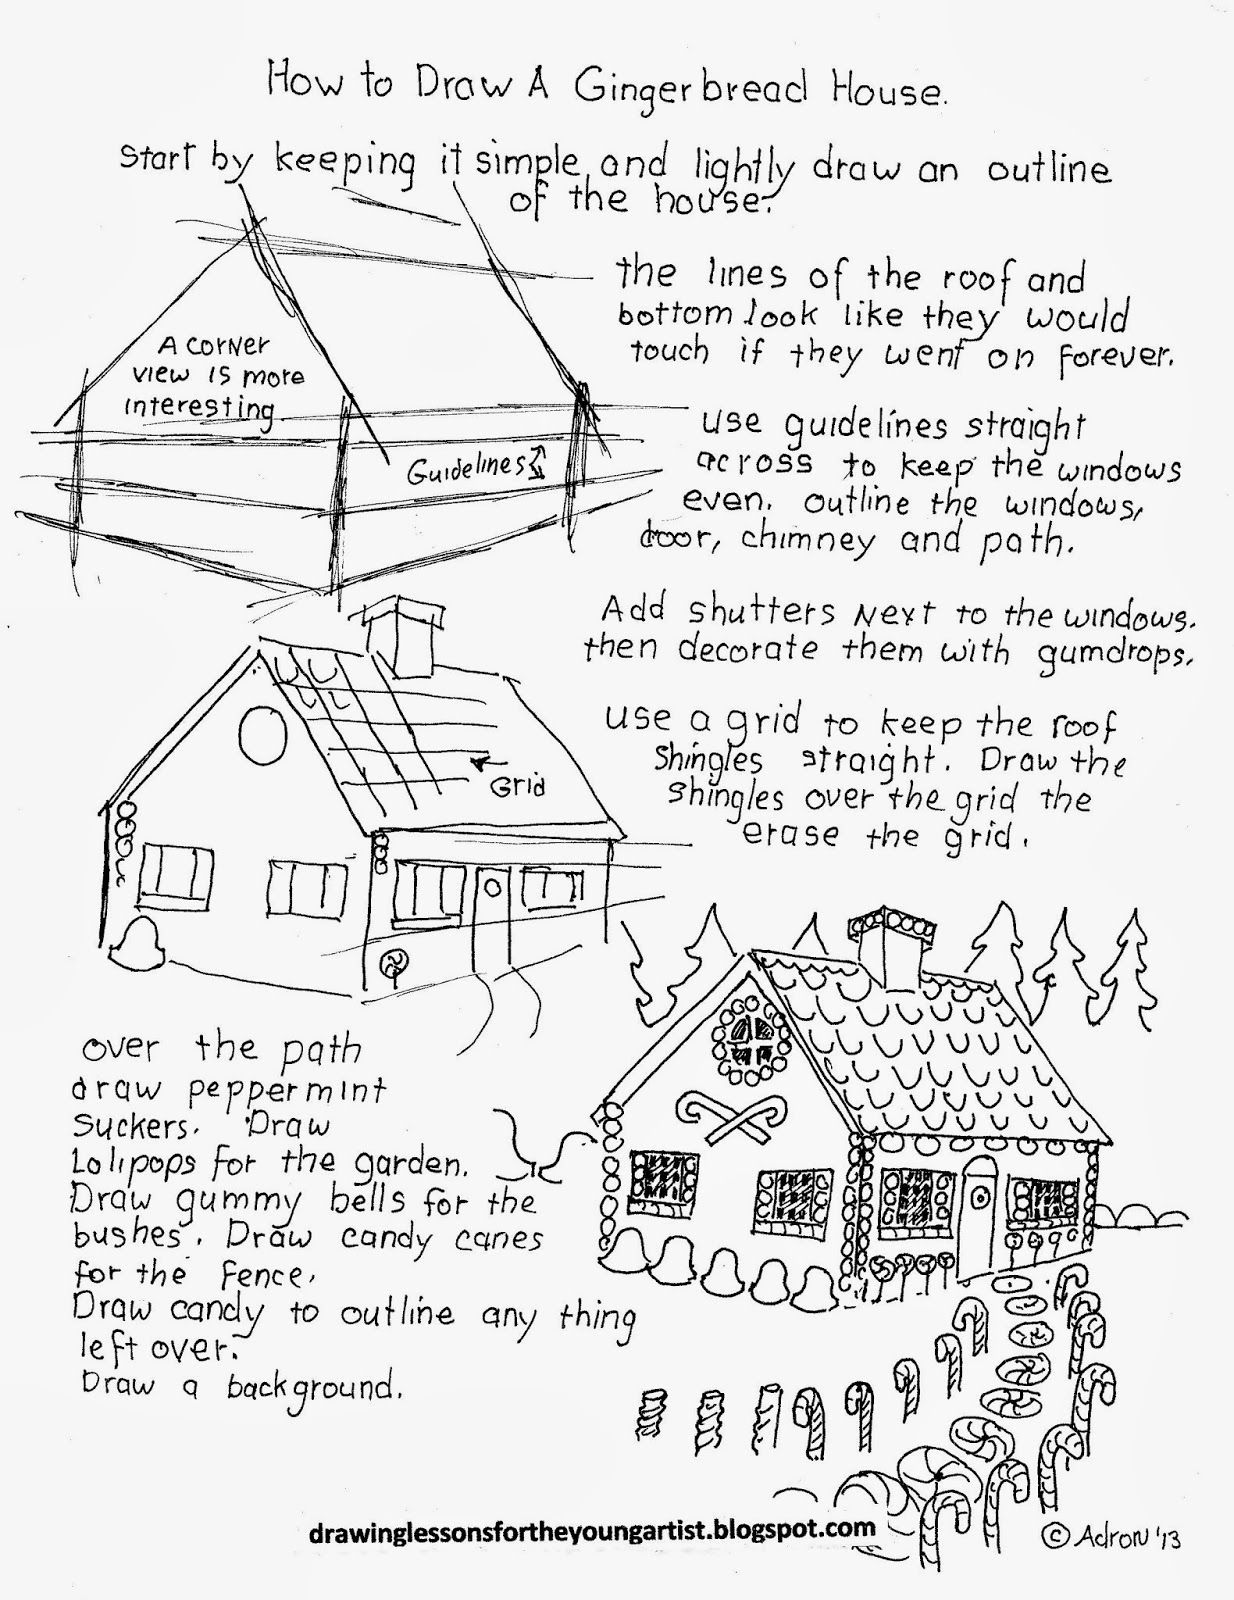 How To Draw A Gingerbread House For Christmas Worksheet